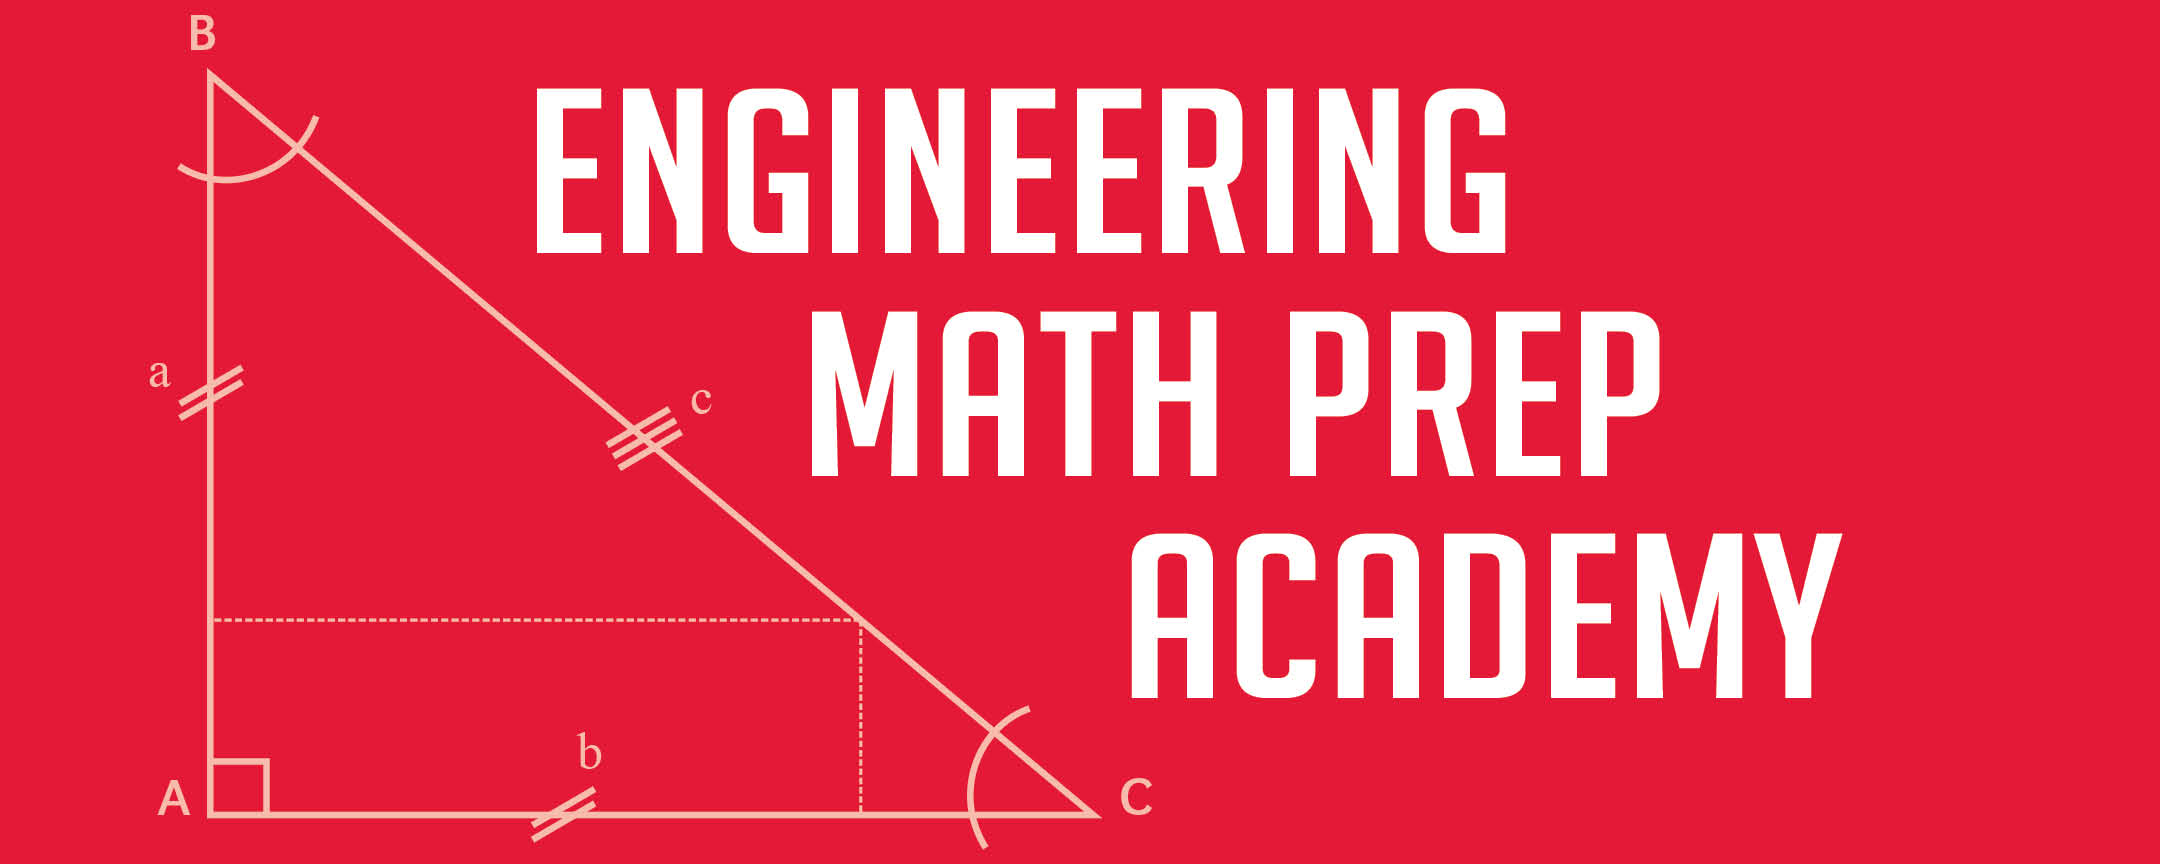 Banner with Image of Right Angle next to the words Engineering Math Prep Academy